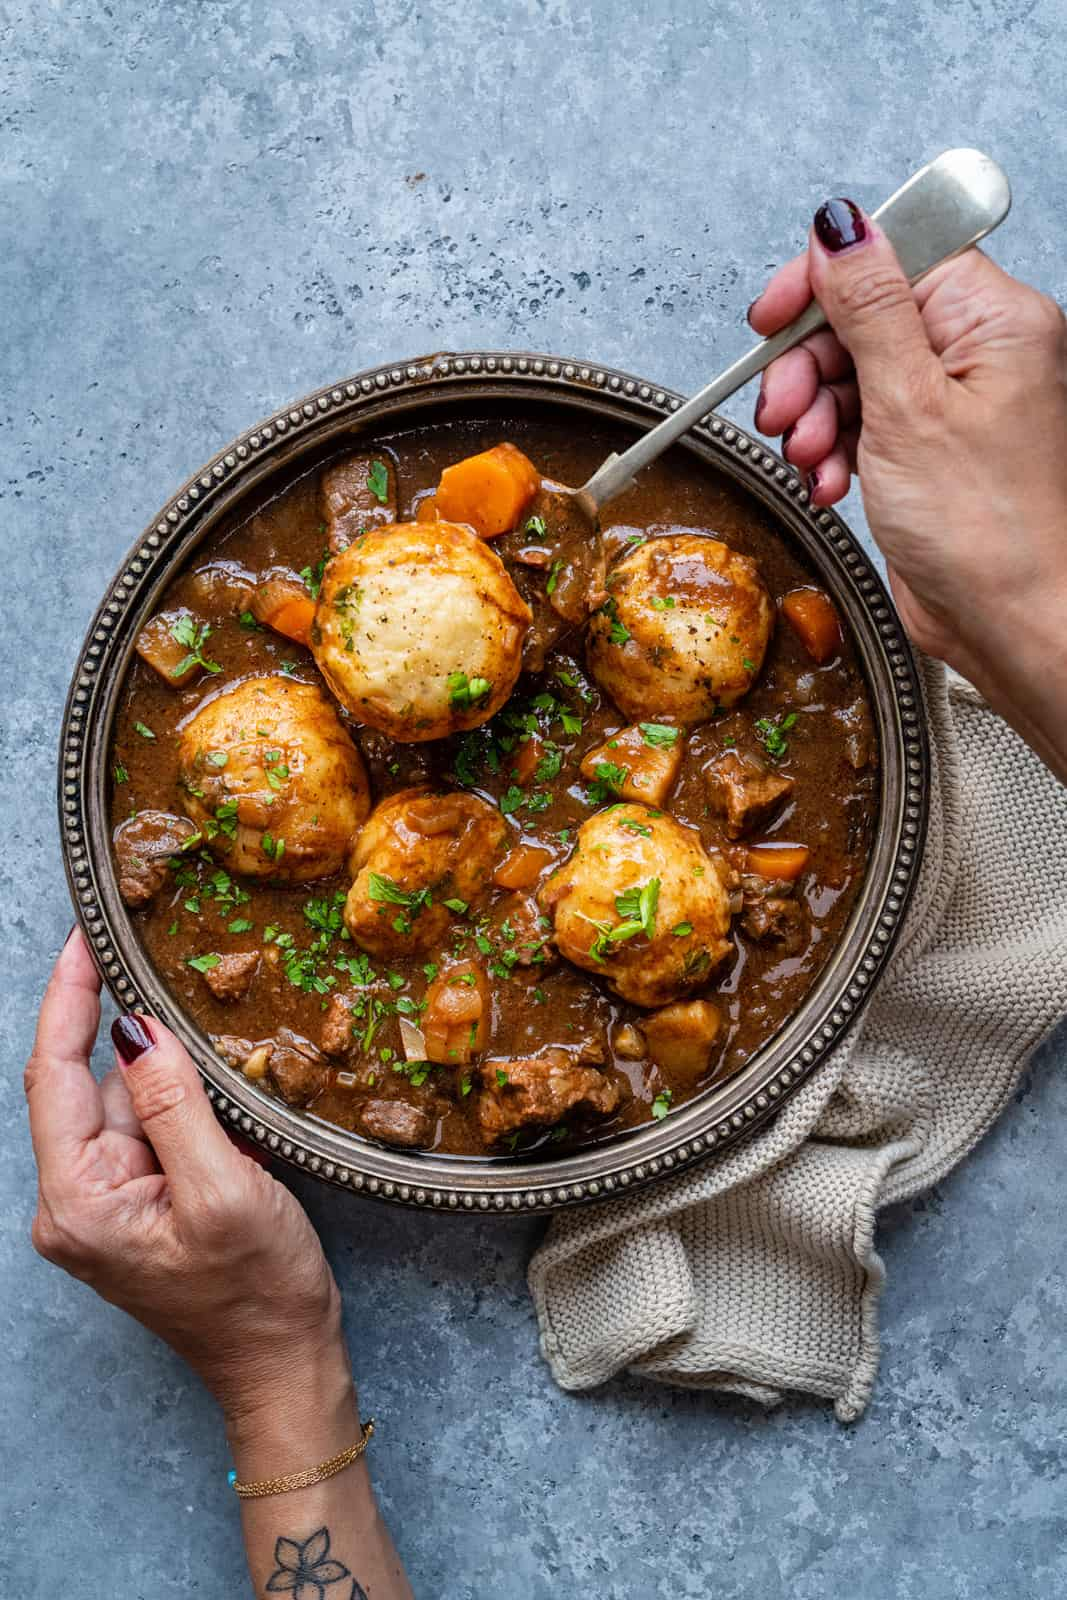 Beef stew with dumplings in a bowl